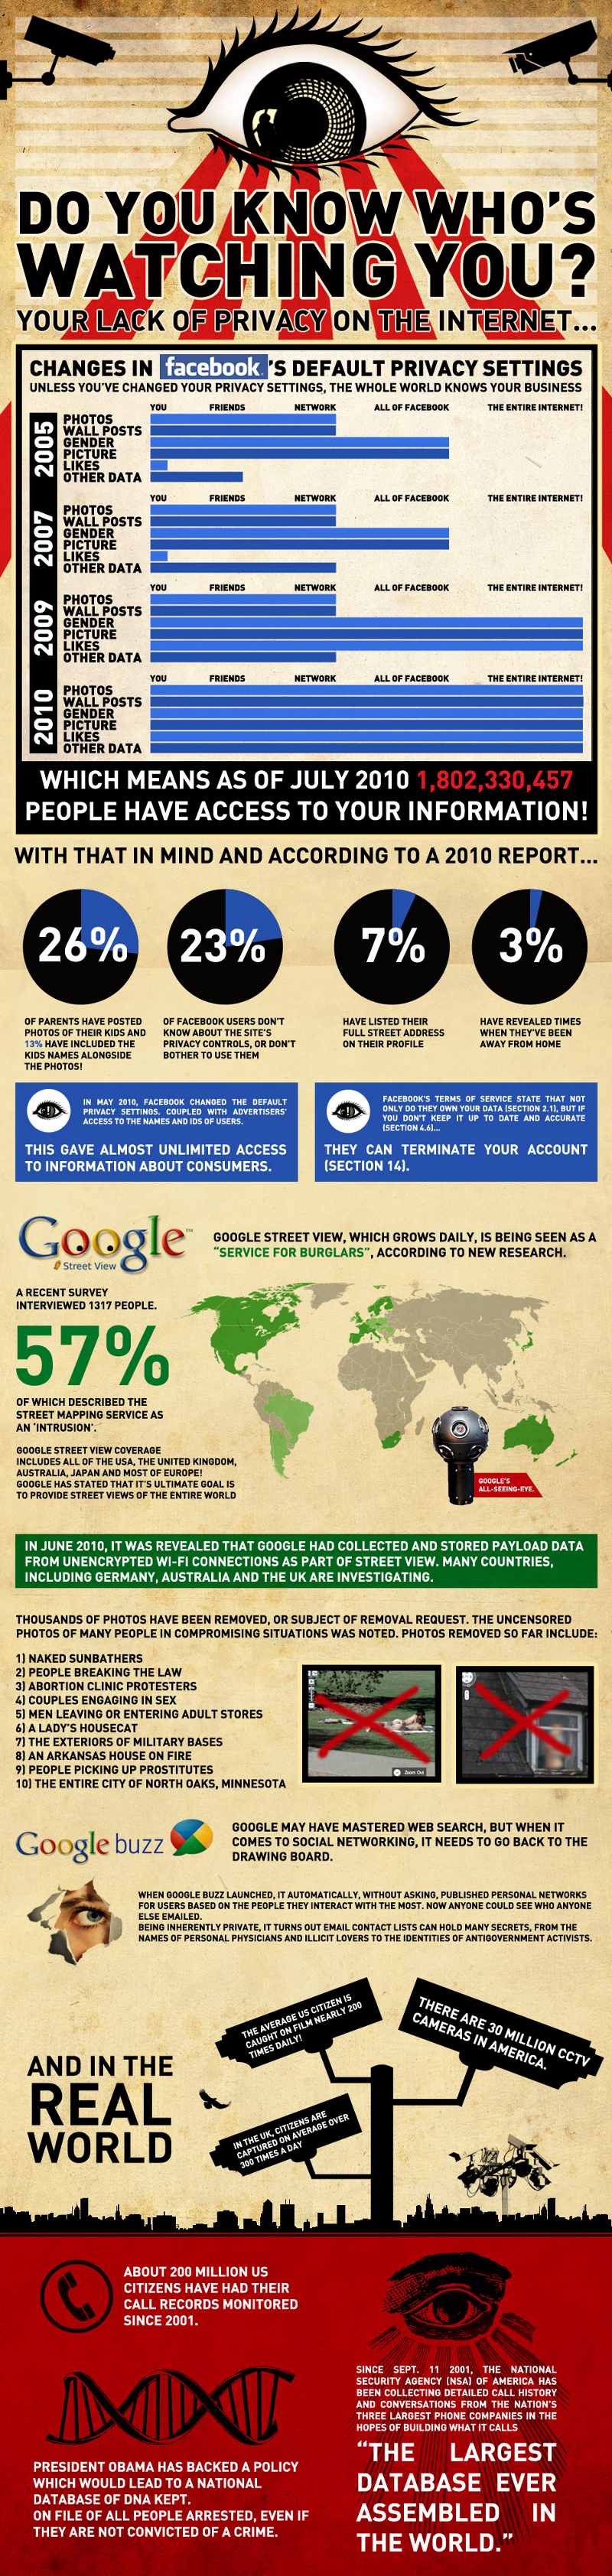 Internet Privacy Statistics and Facts